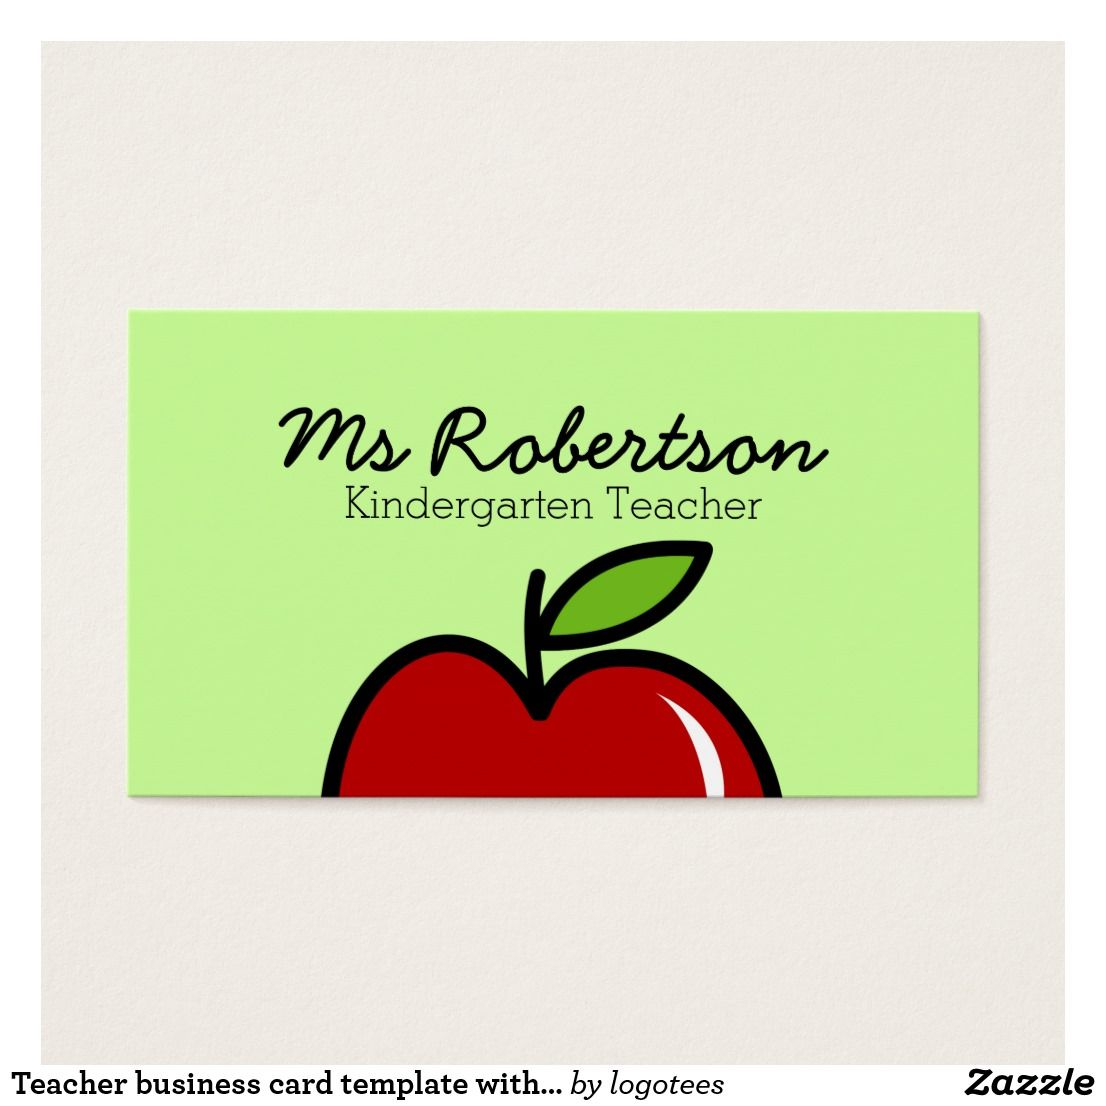 Teacher business card template with red apple teacher business teacher business card template with red apple flashek Choice Image